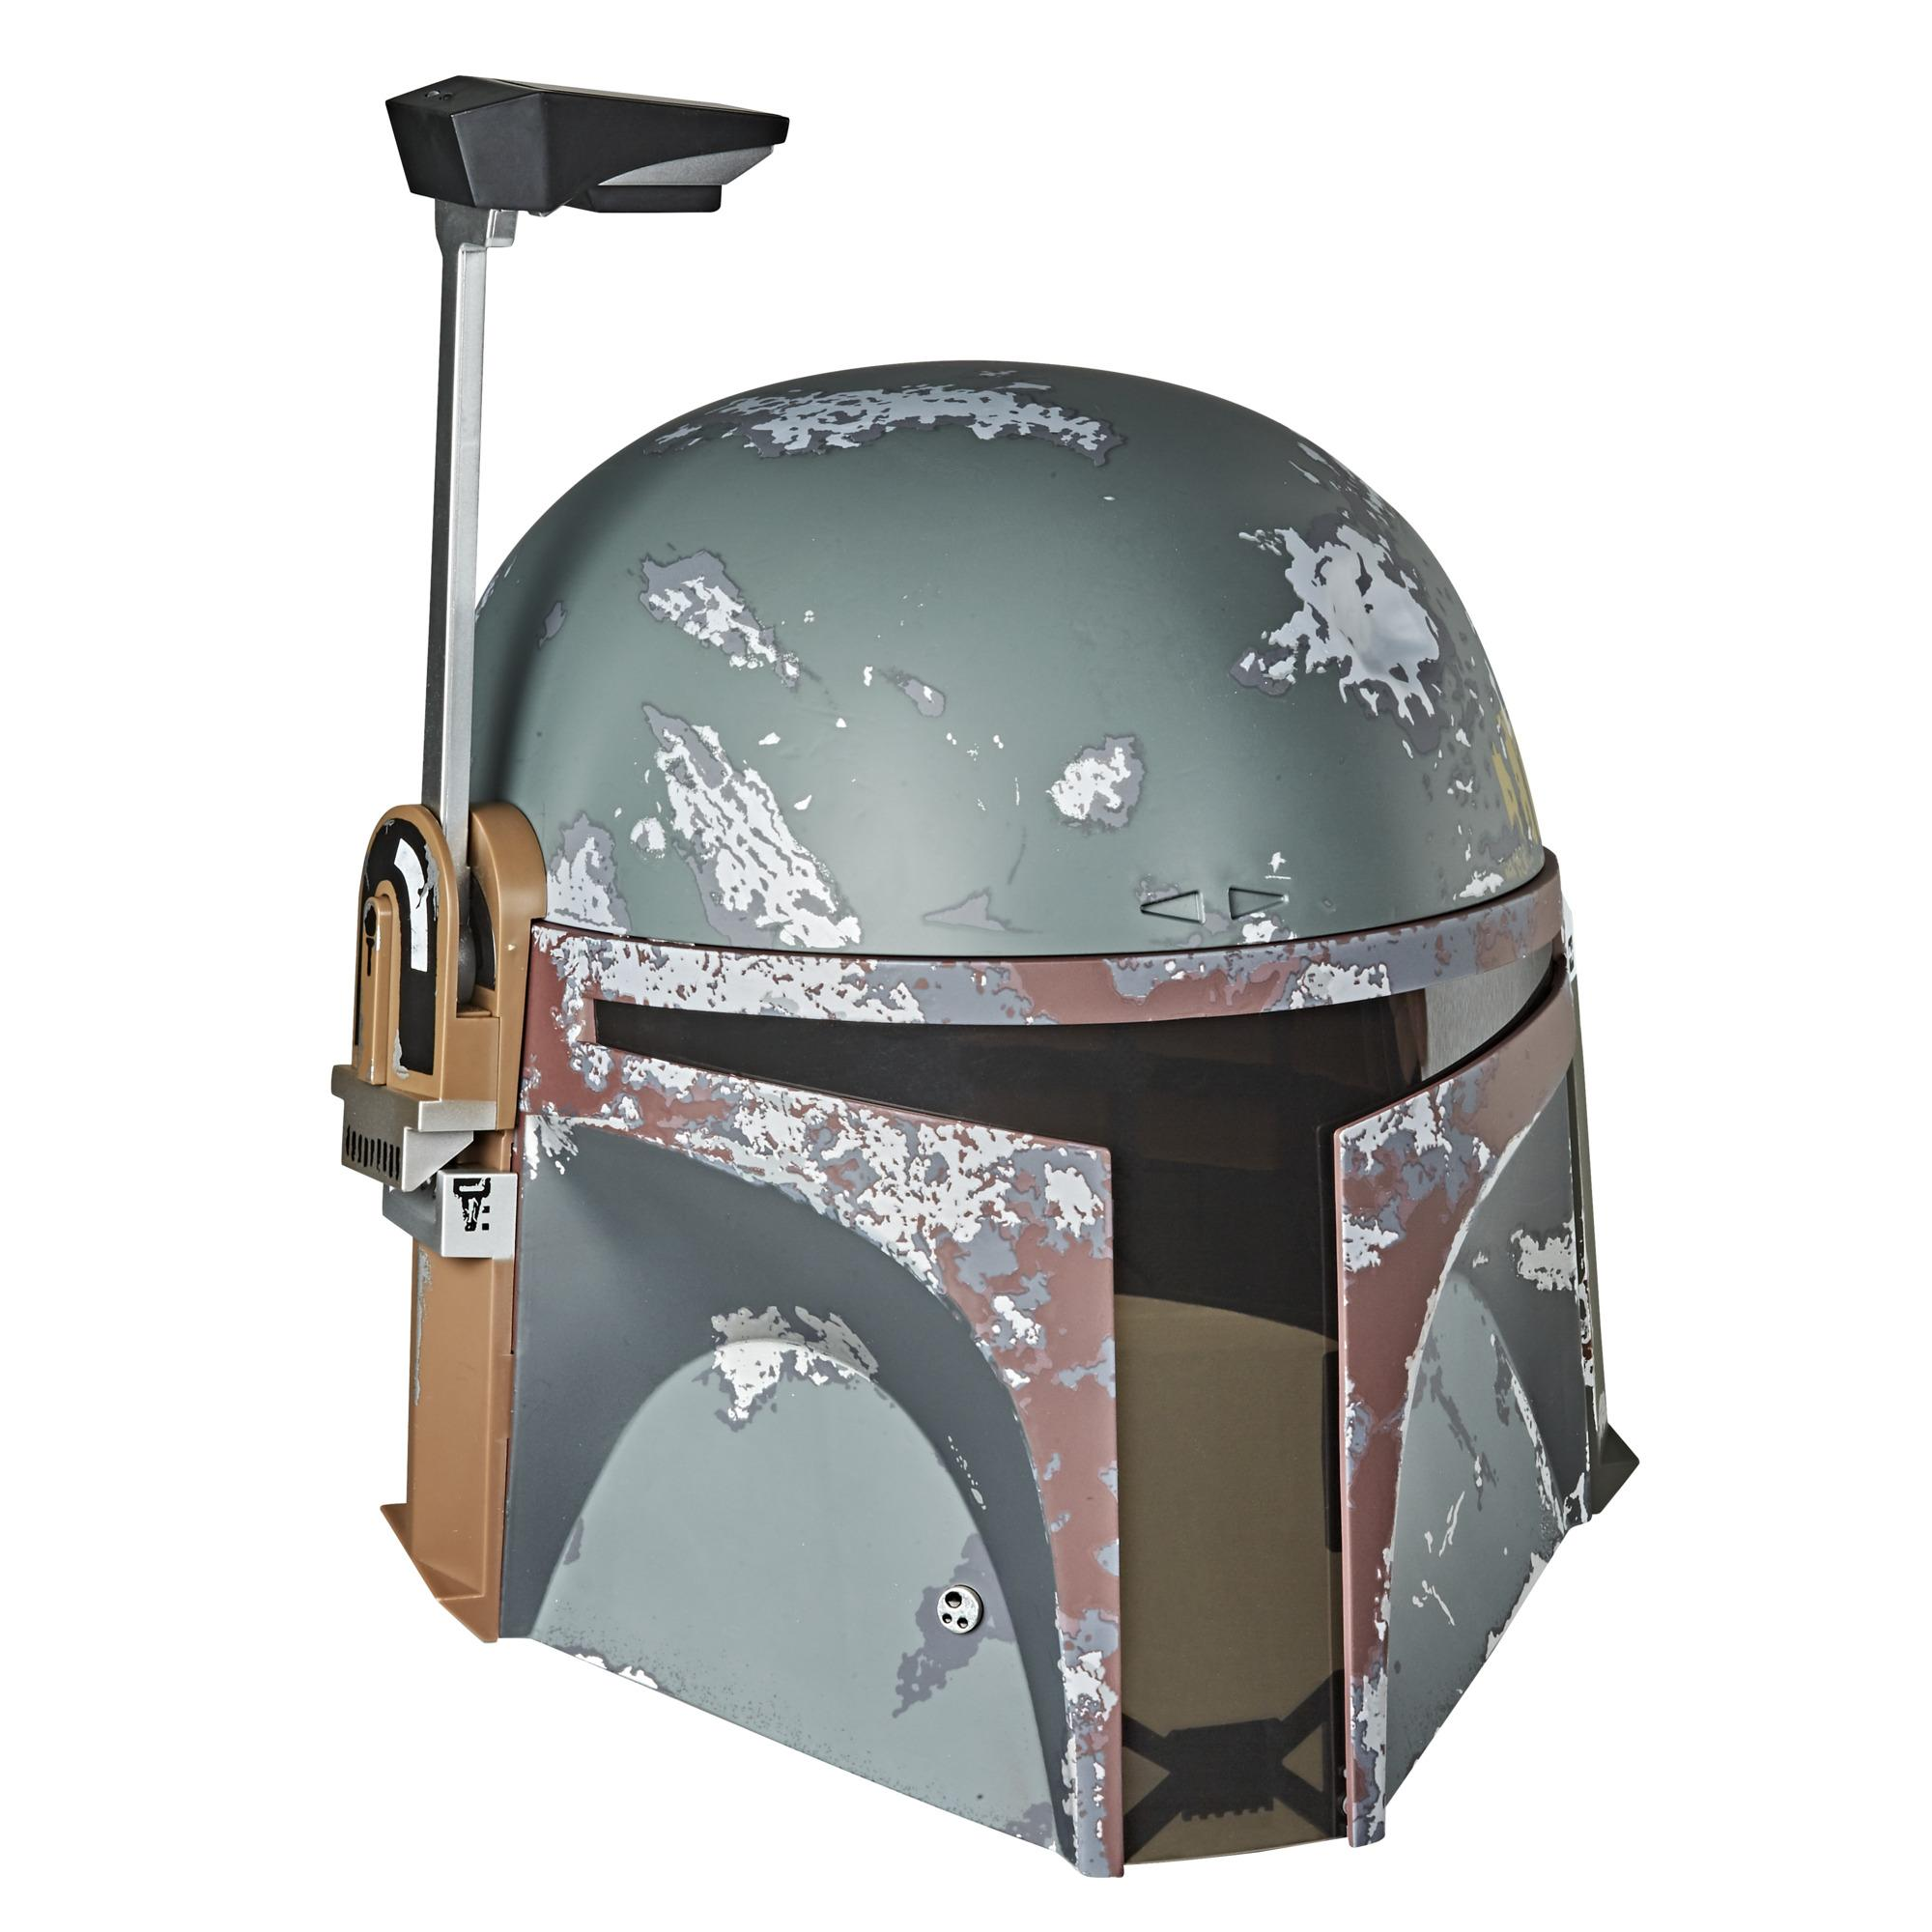 Star Wars The Black Series Boba Fett Premium Elektronik Kask